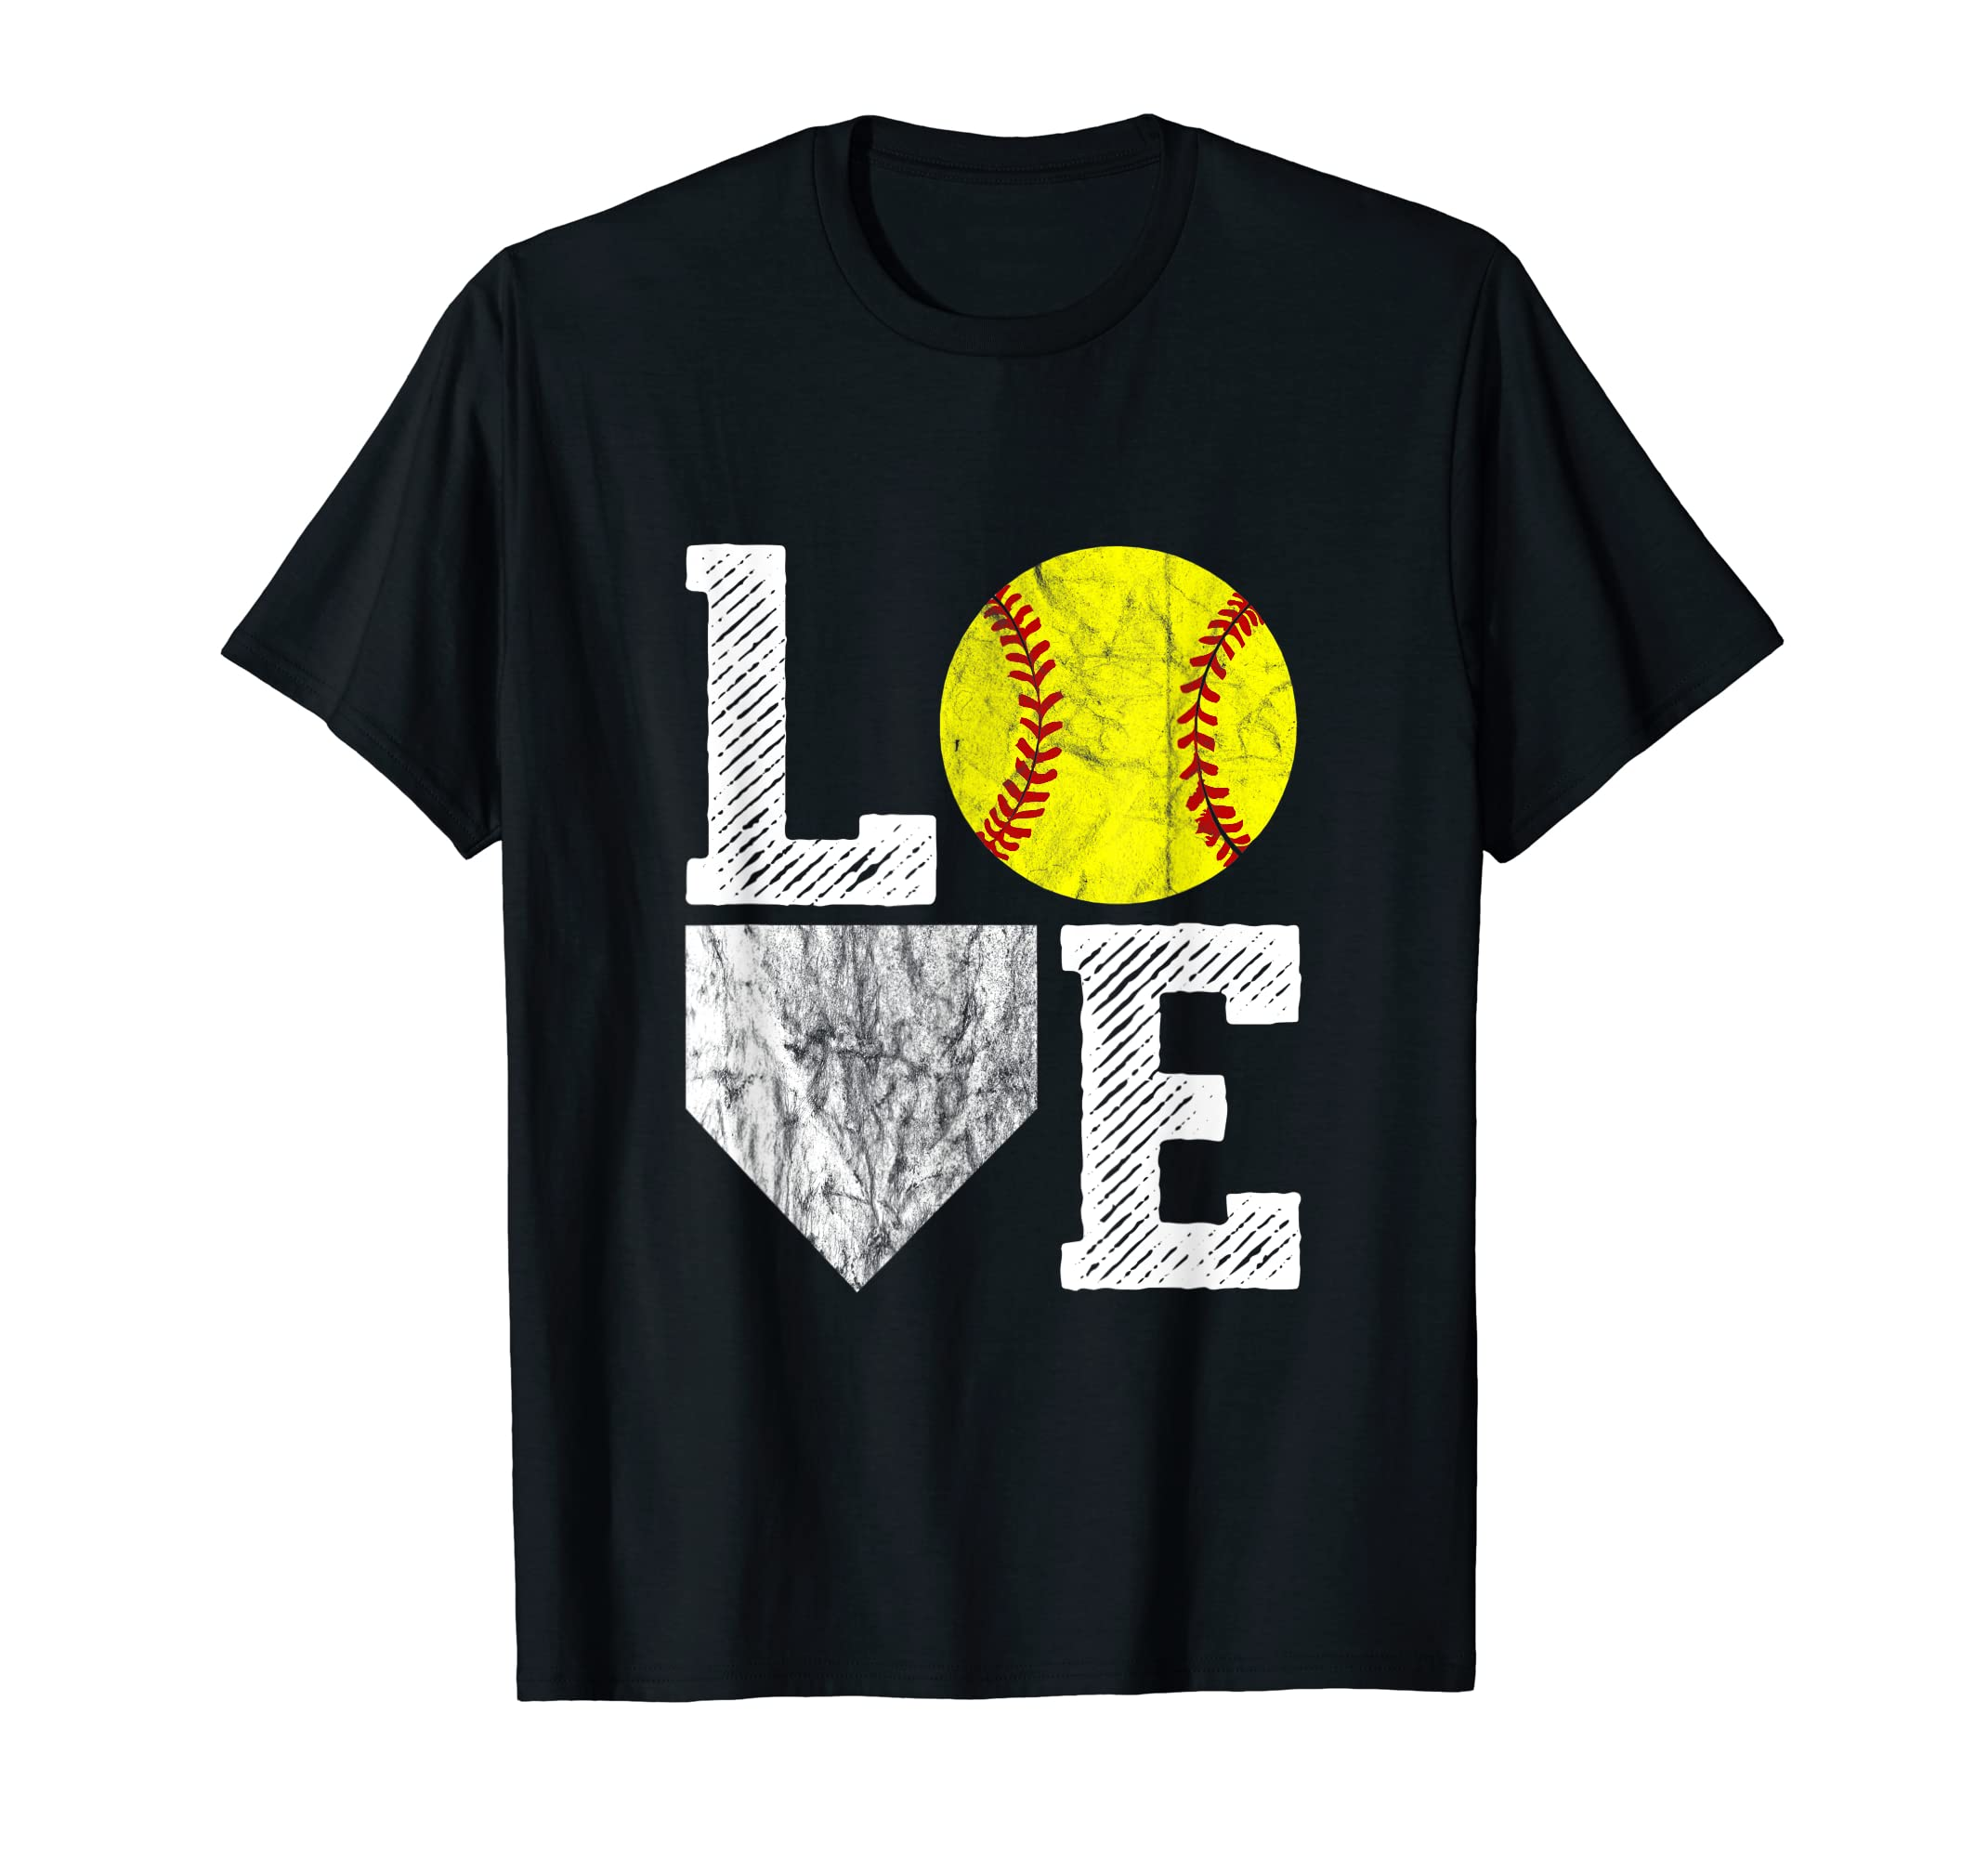 34062cbb Amazon.com: Love Softball T Shirt Girls Mom Women Vintage Softball Gift:  Clothing